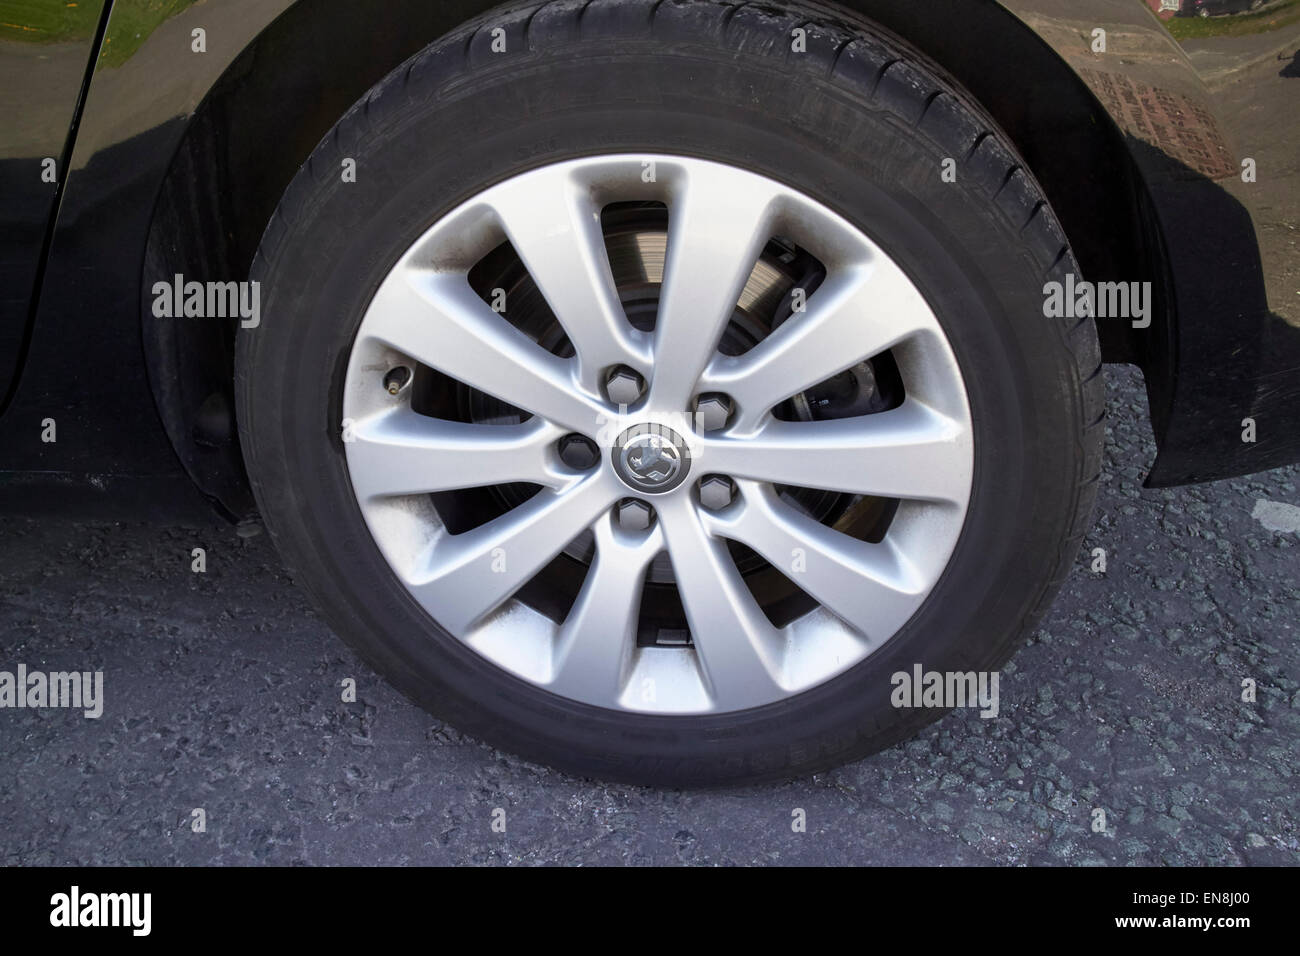 vauxhall alloy wheels on an mpv england uk - Stock Image